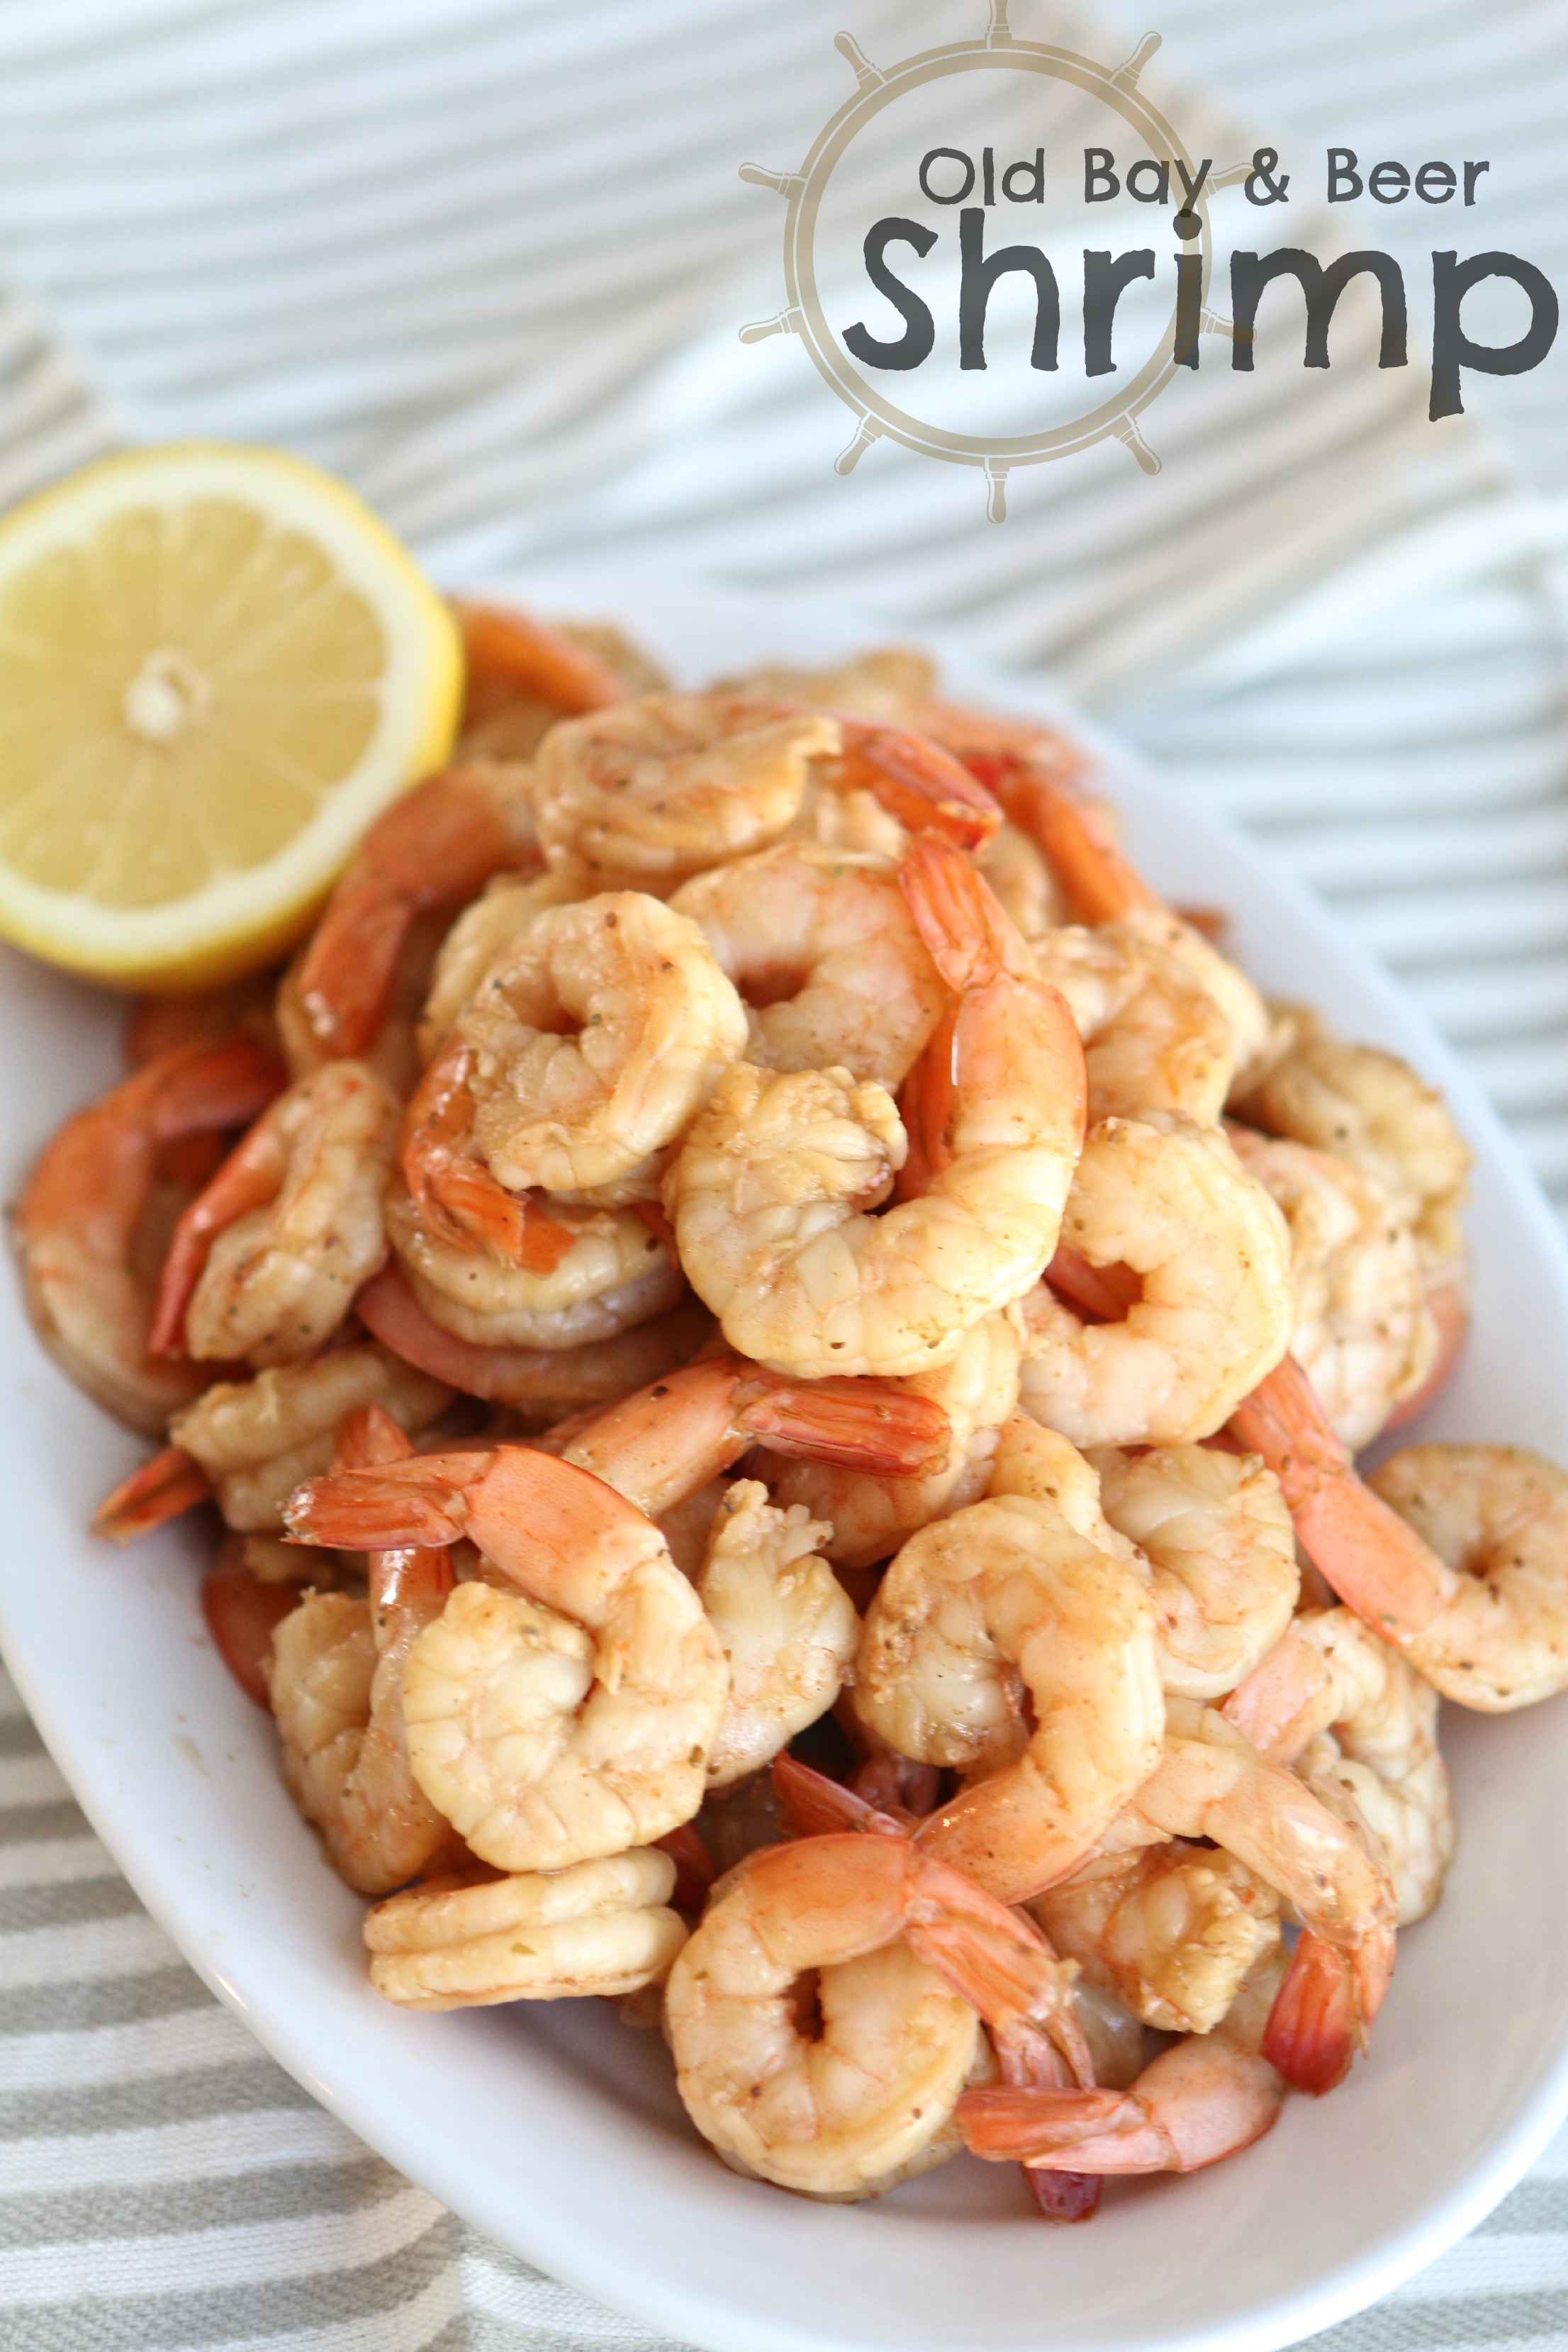 Old bay and beer shrimp